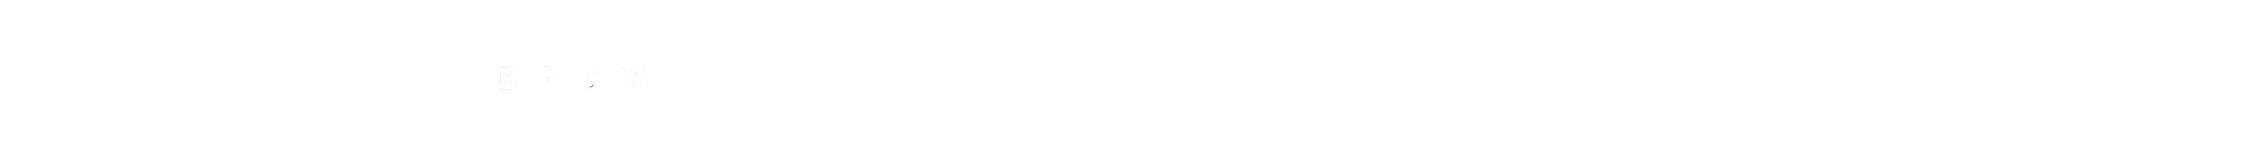 ROCS featured in the Washington Post, Forbes, CNBC, Inc.